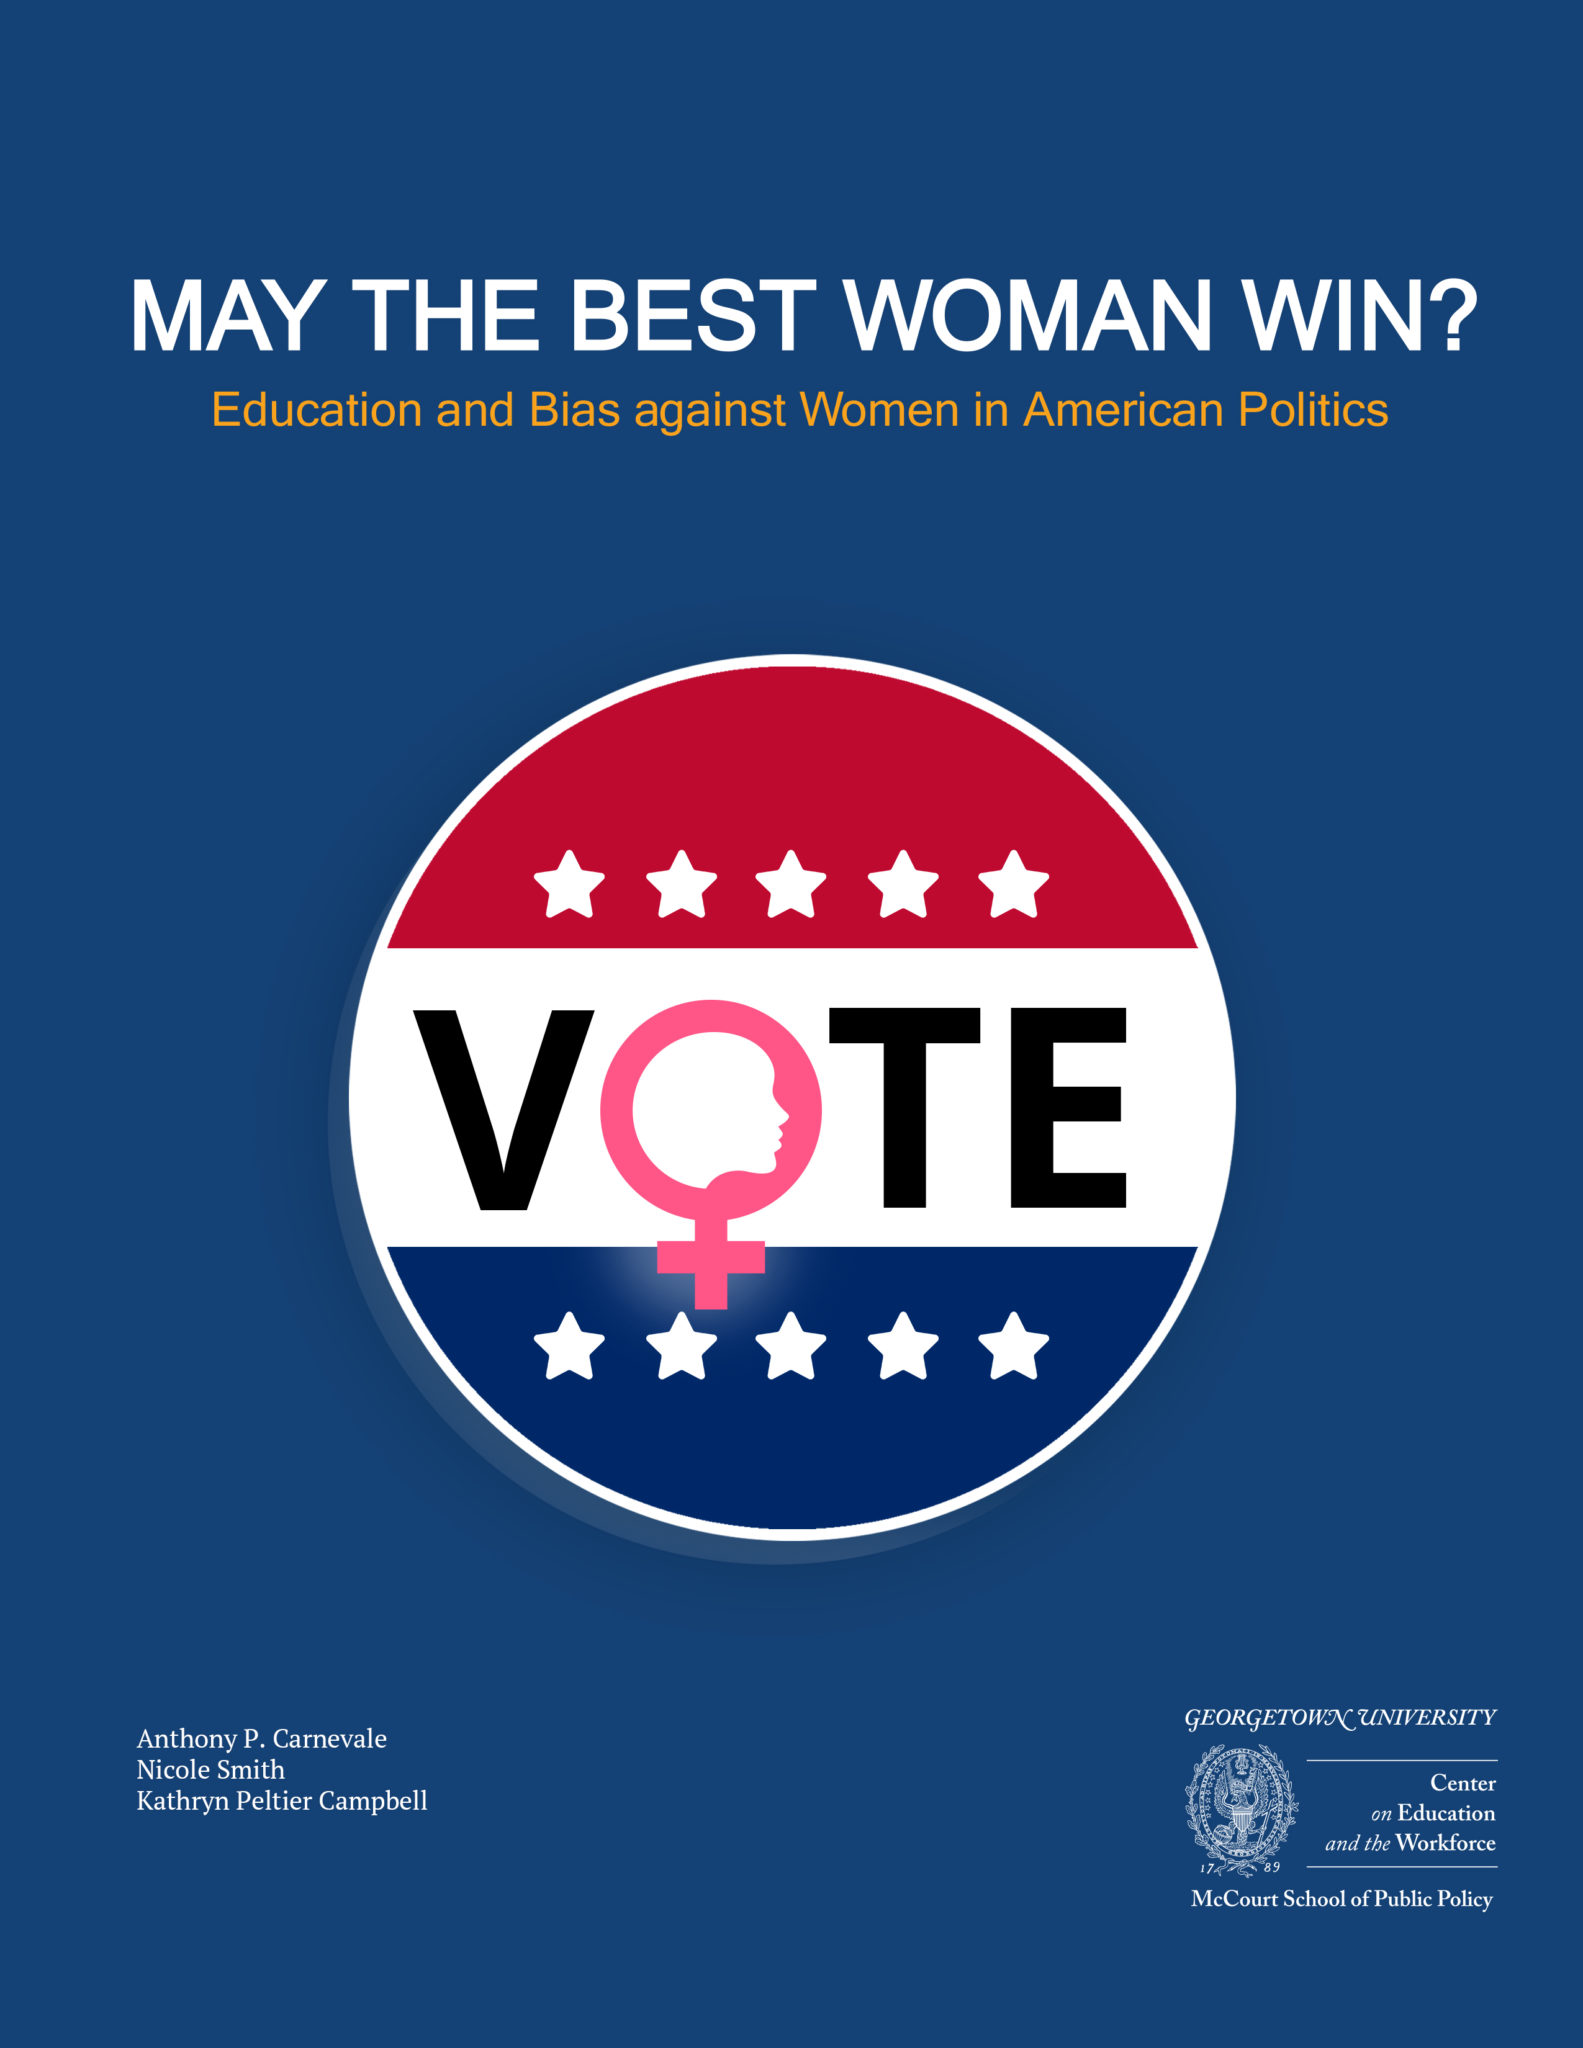 May the best woman win?